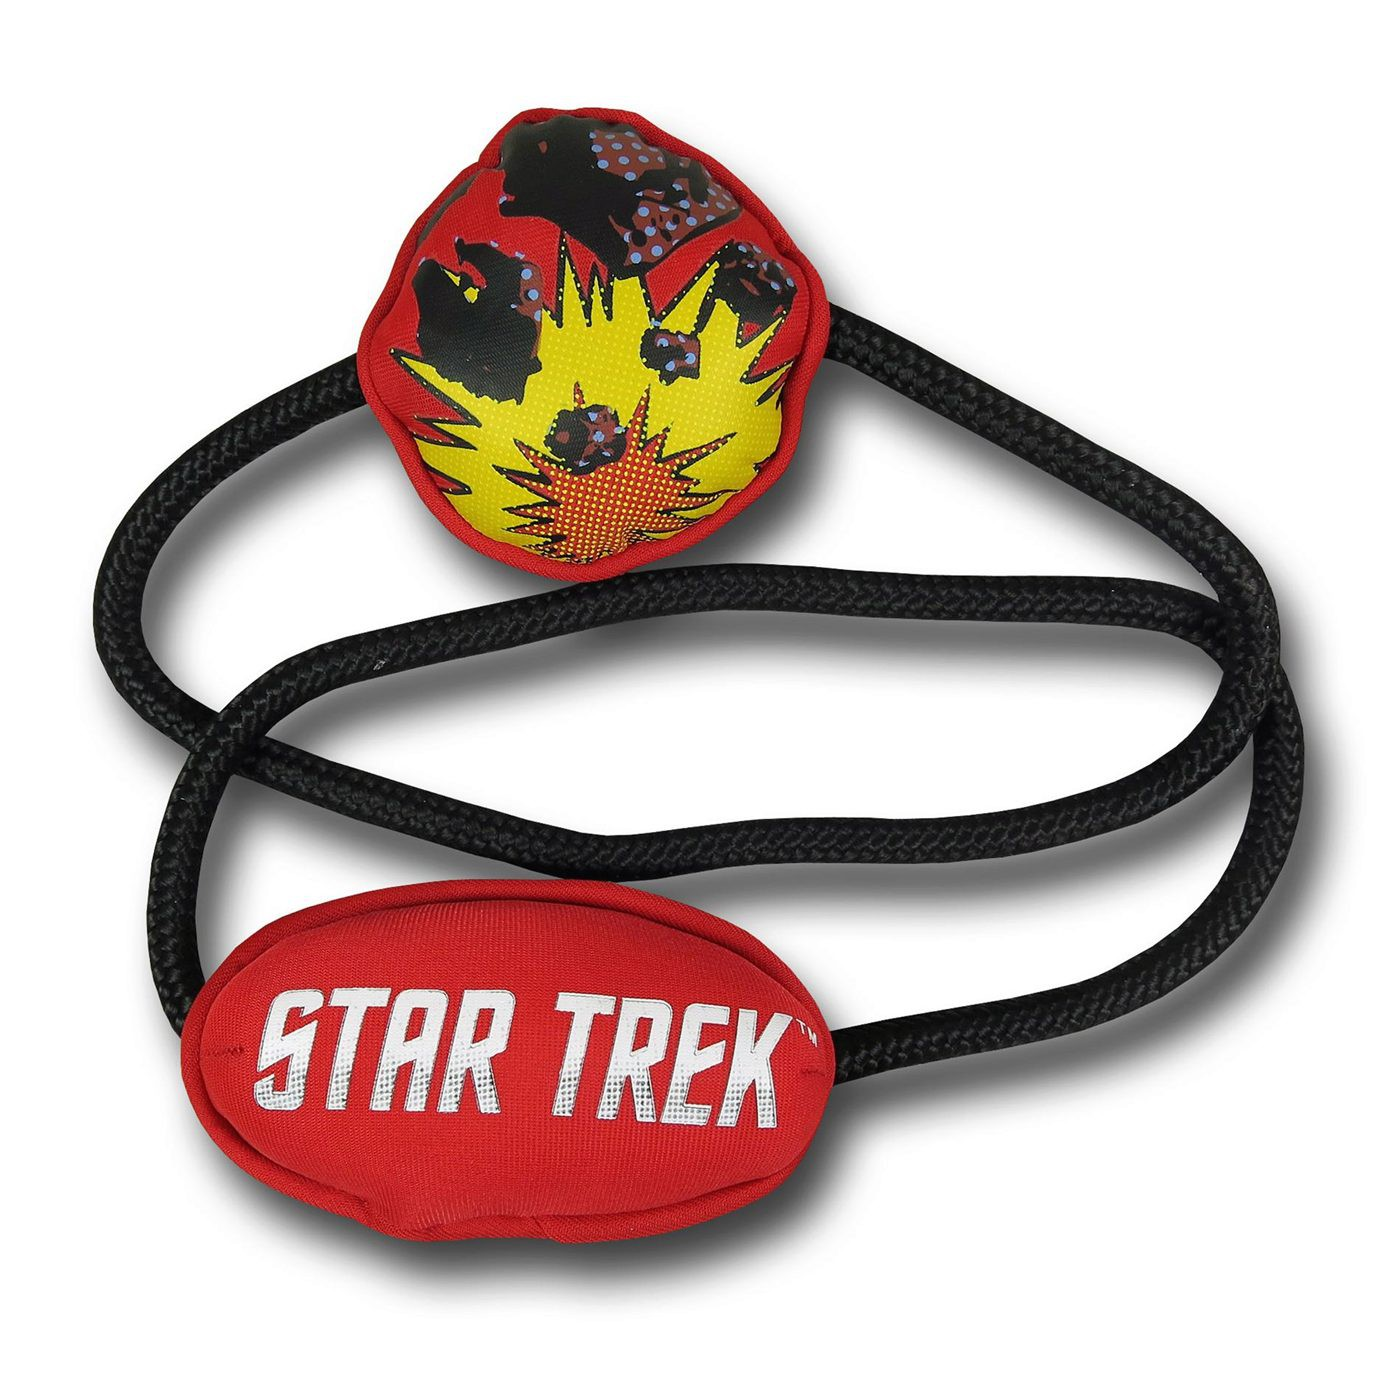 Star Trek Planet Disaster Dog Rope Toy